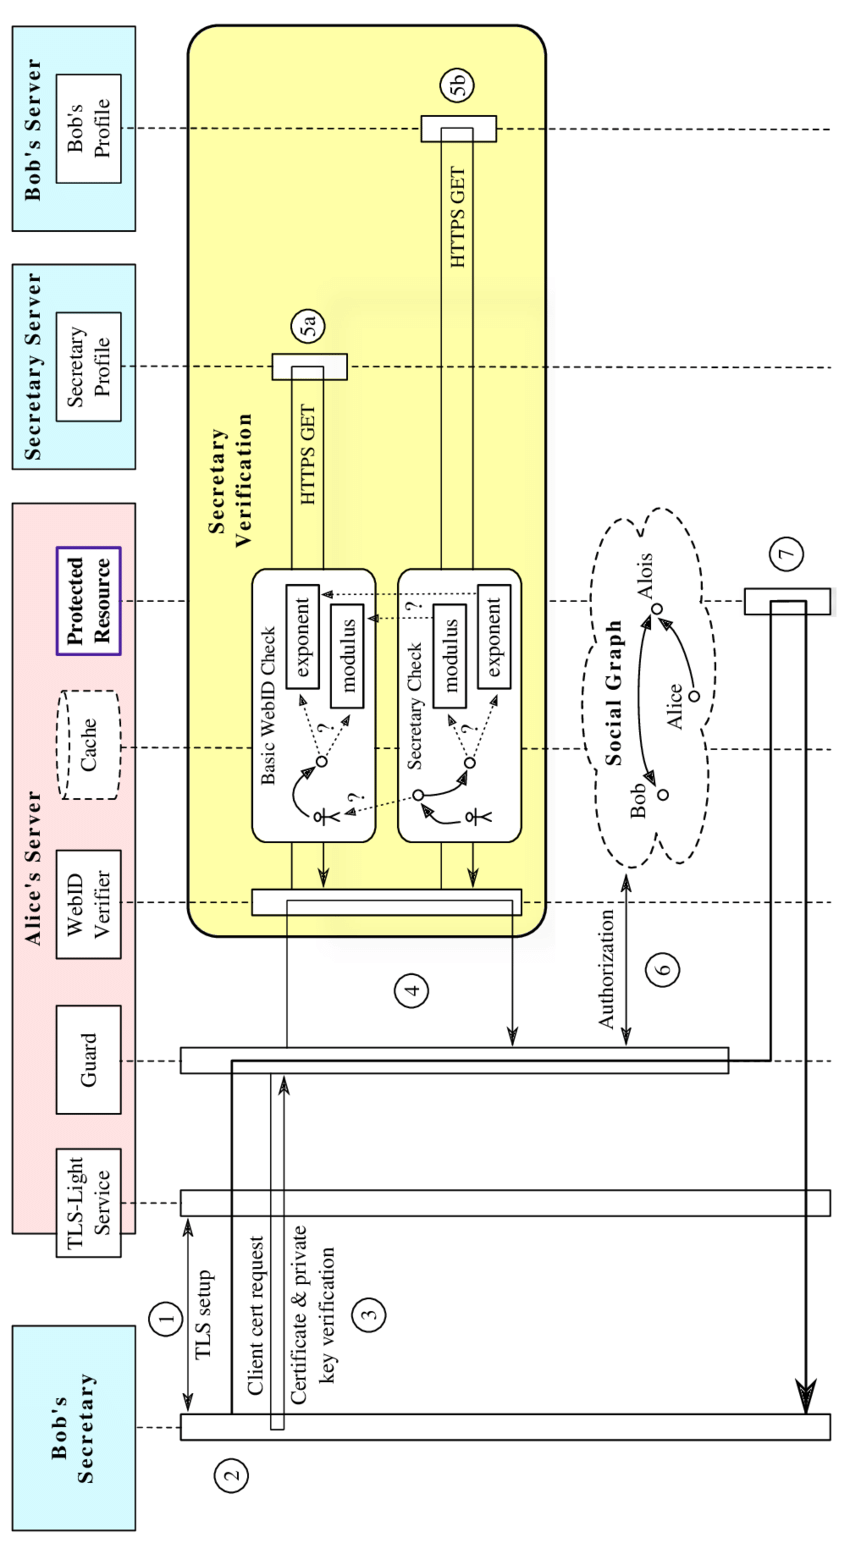 medium resolution of extended webid authentication sequence